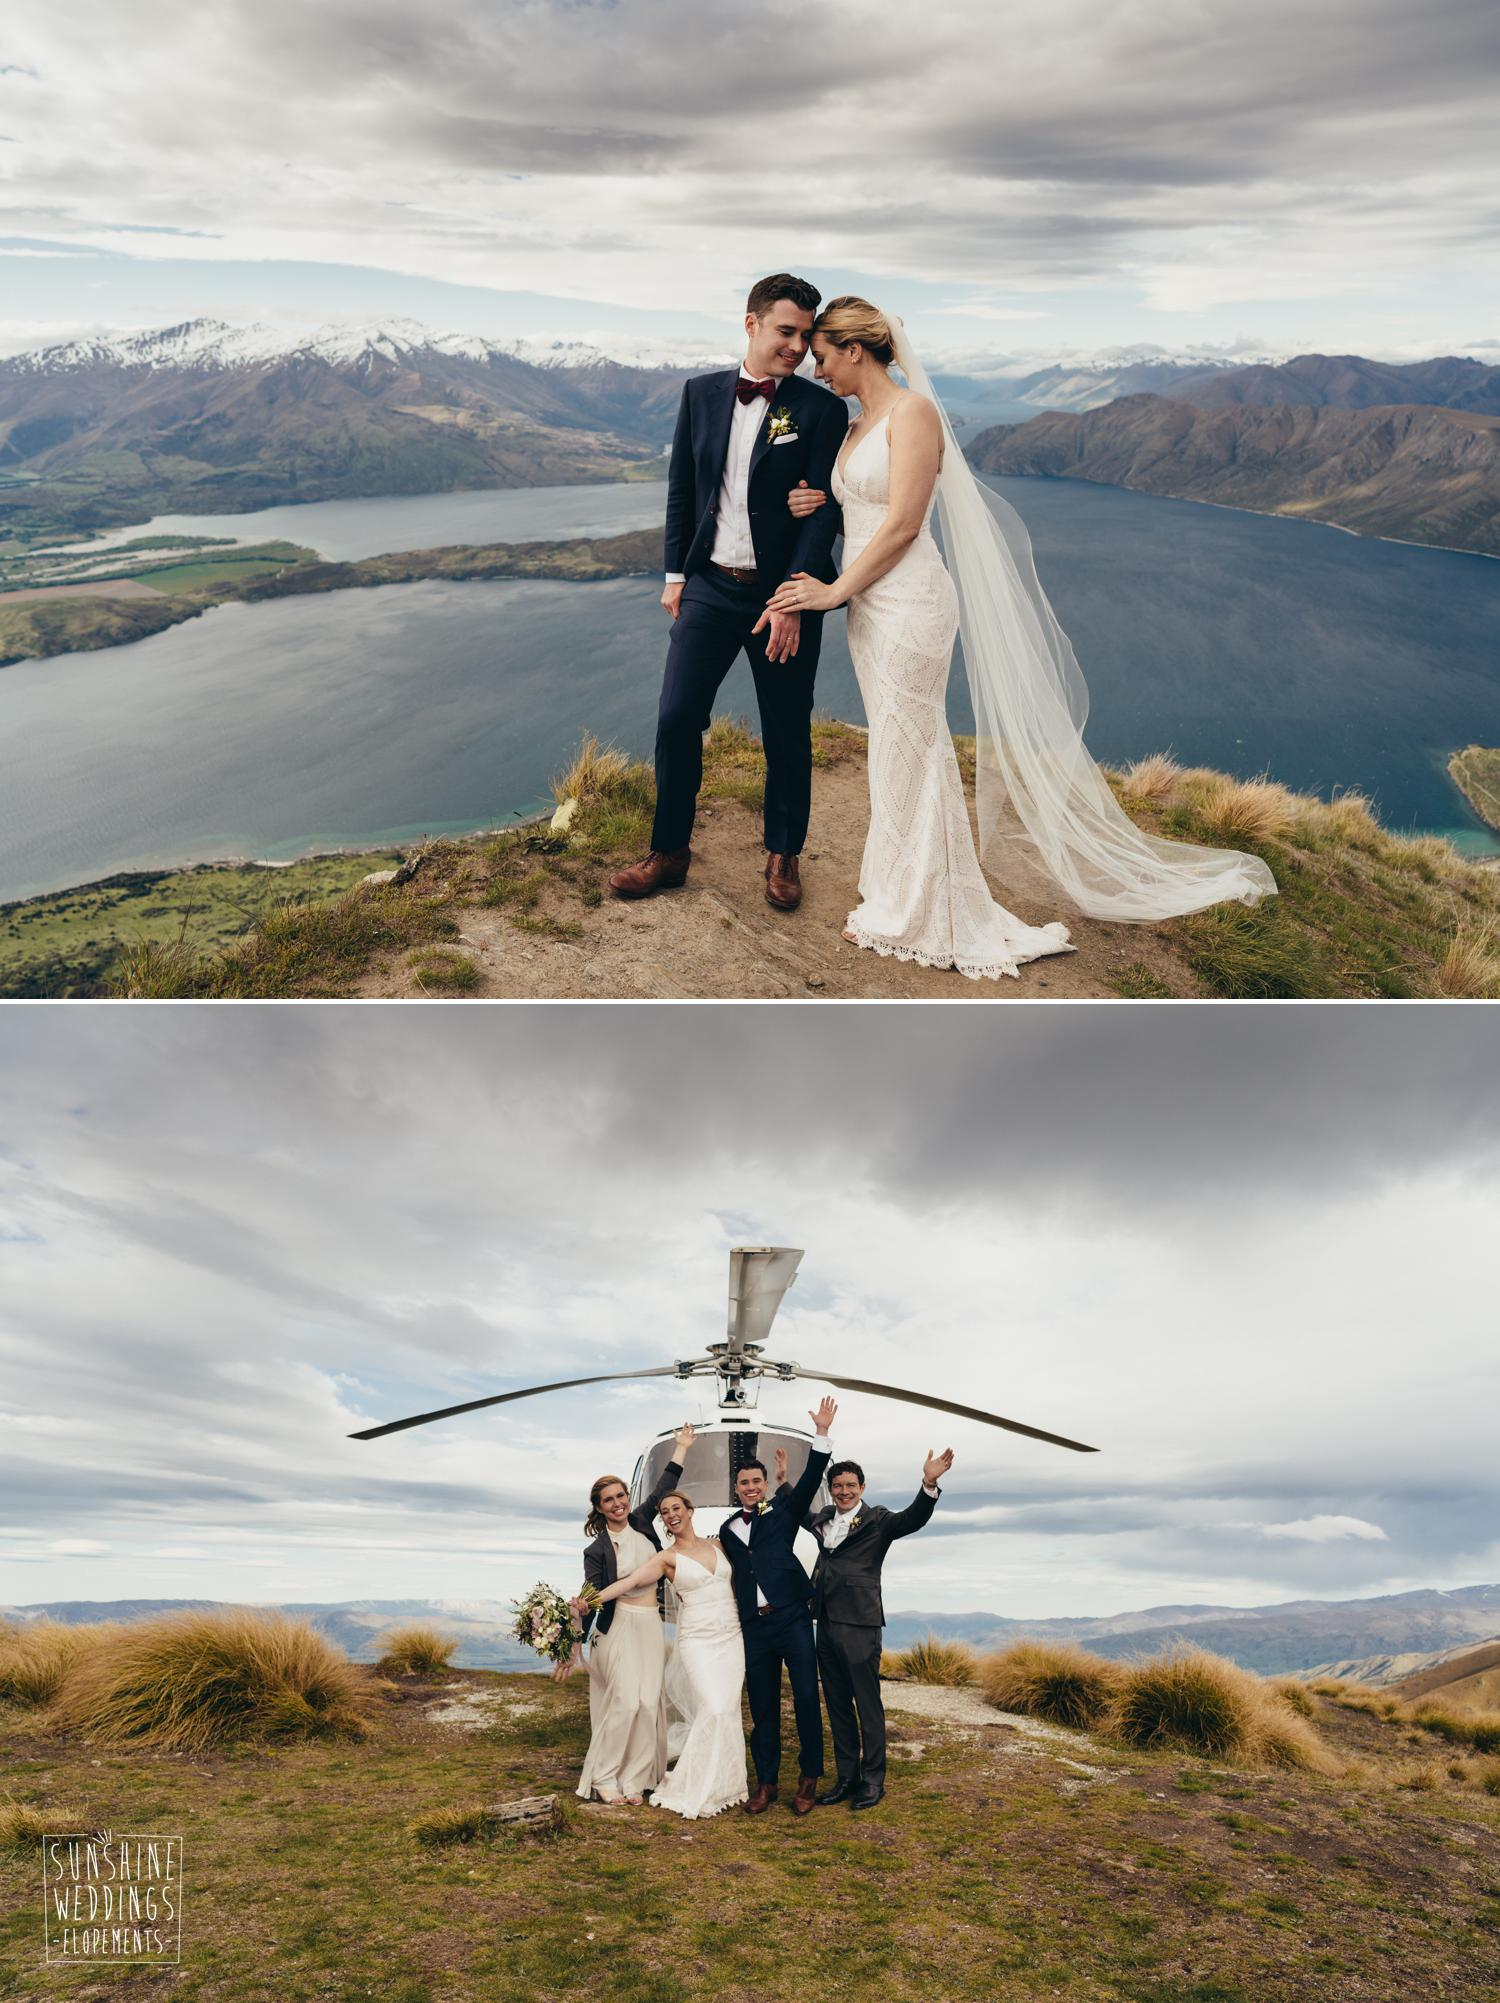 Coromandel Peak Lake Wanaka, heliworks wedding locations,